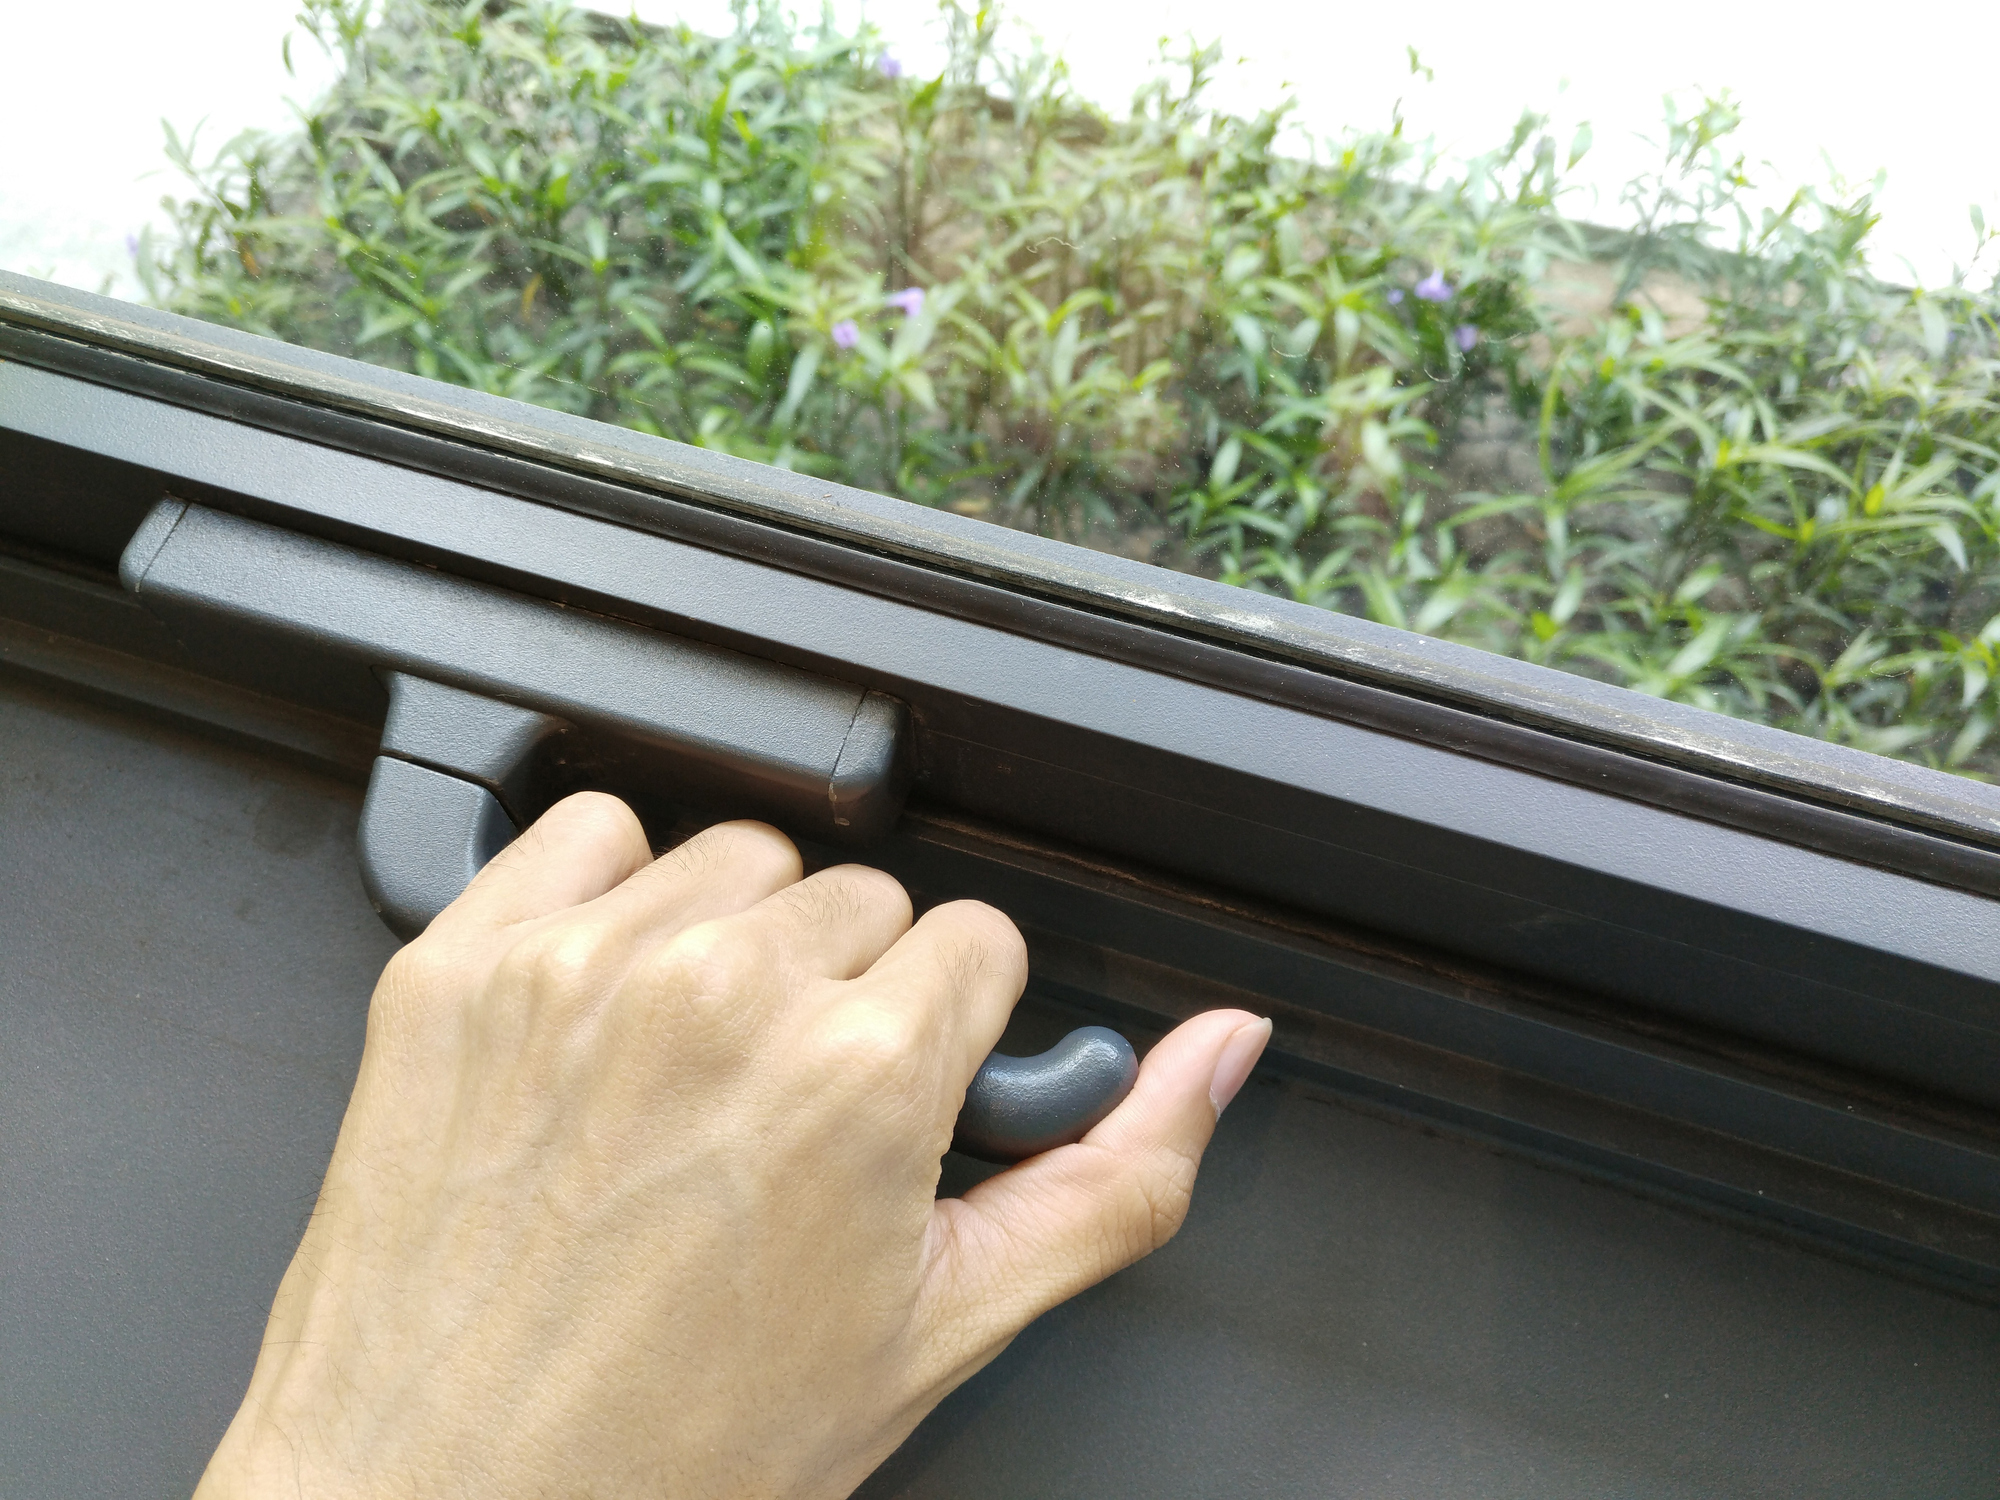 Hand opening, locking window securely, to protect from unwanted things like insects, bugs, fly, birds, pollution (noise, gas, water), unknown person. (Lock and open Concept, cannot come in, be alone)